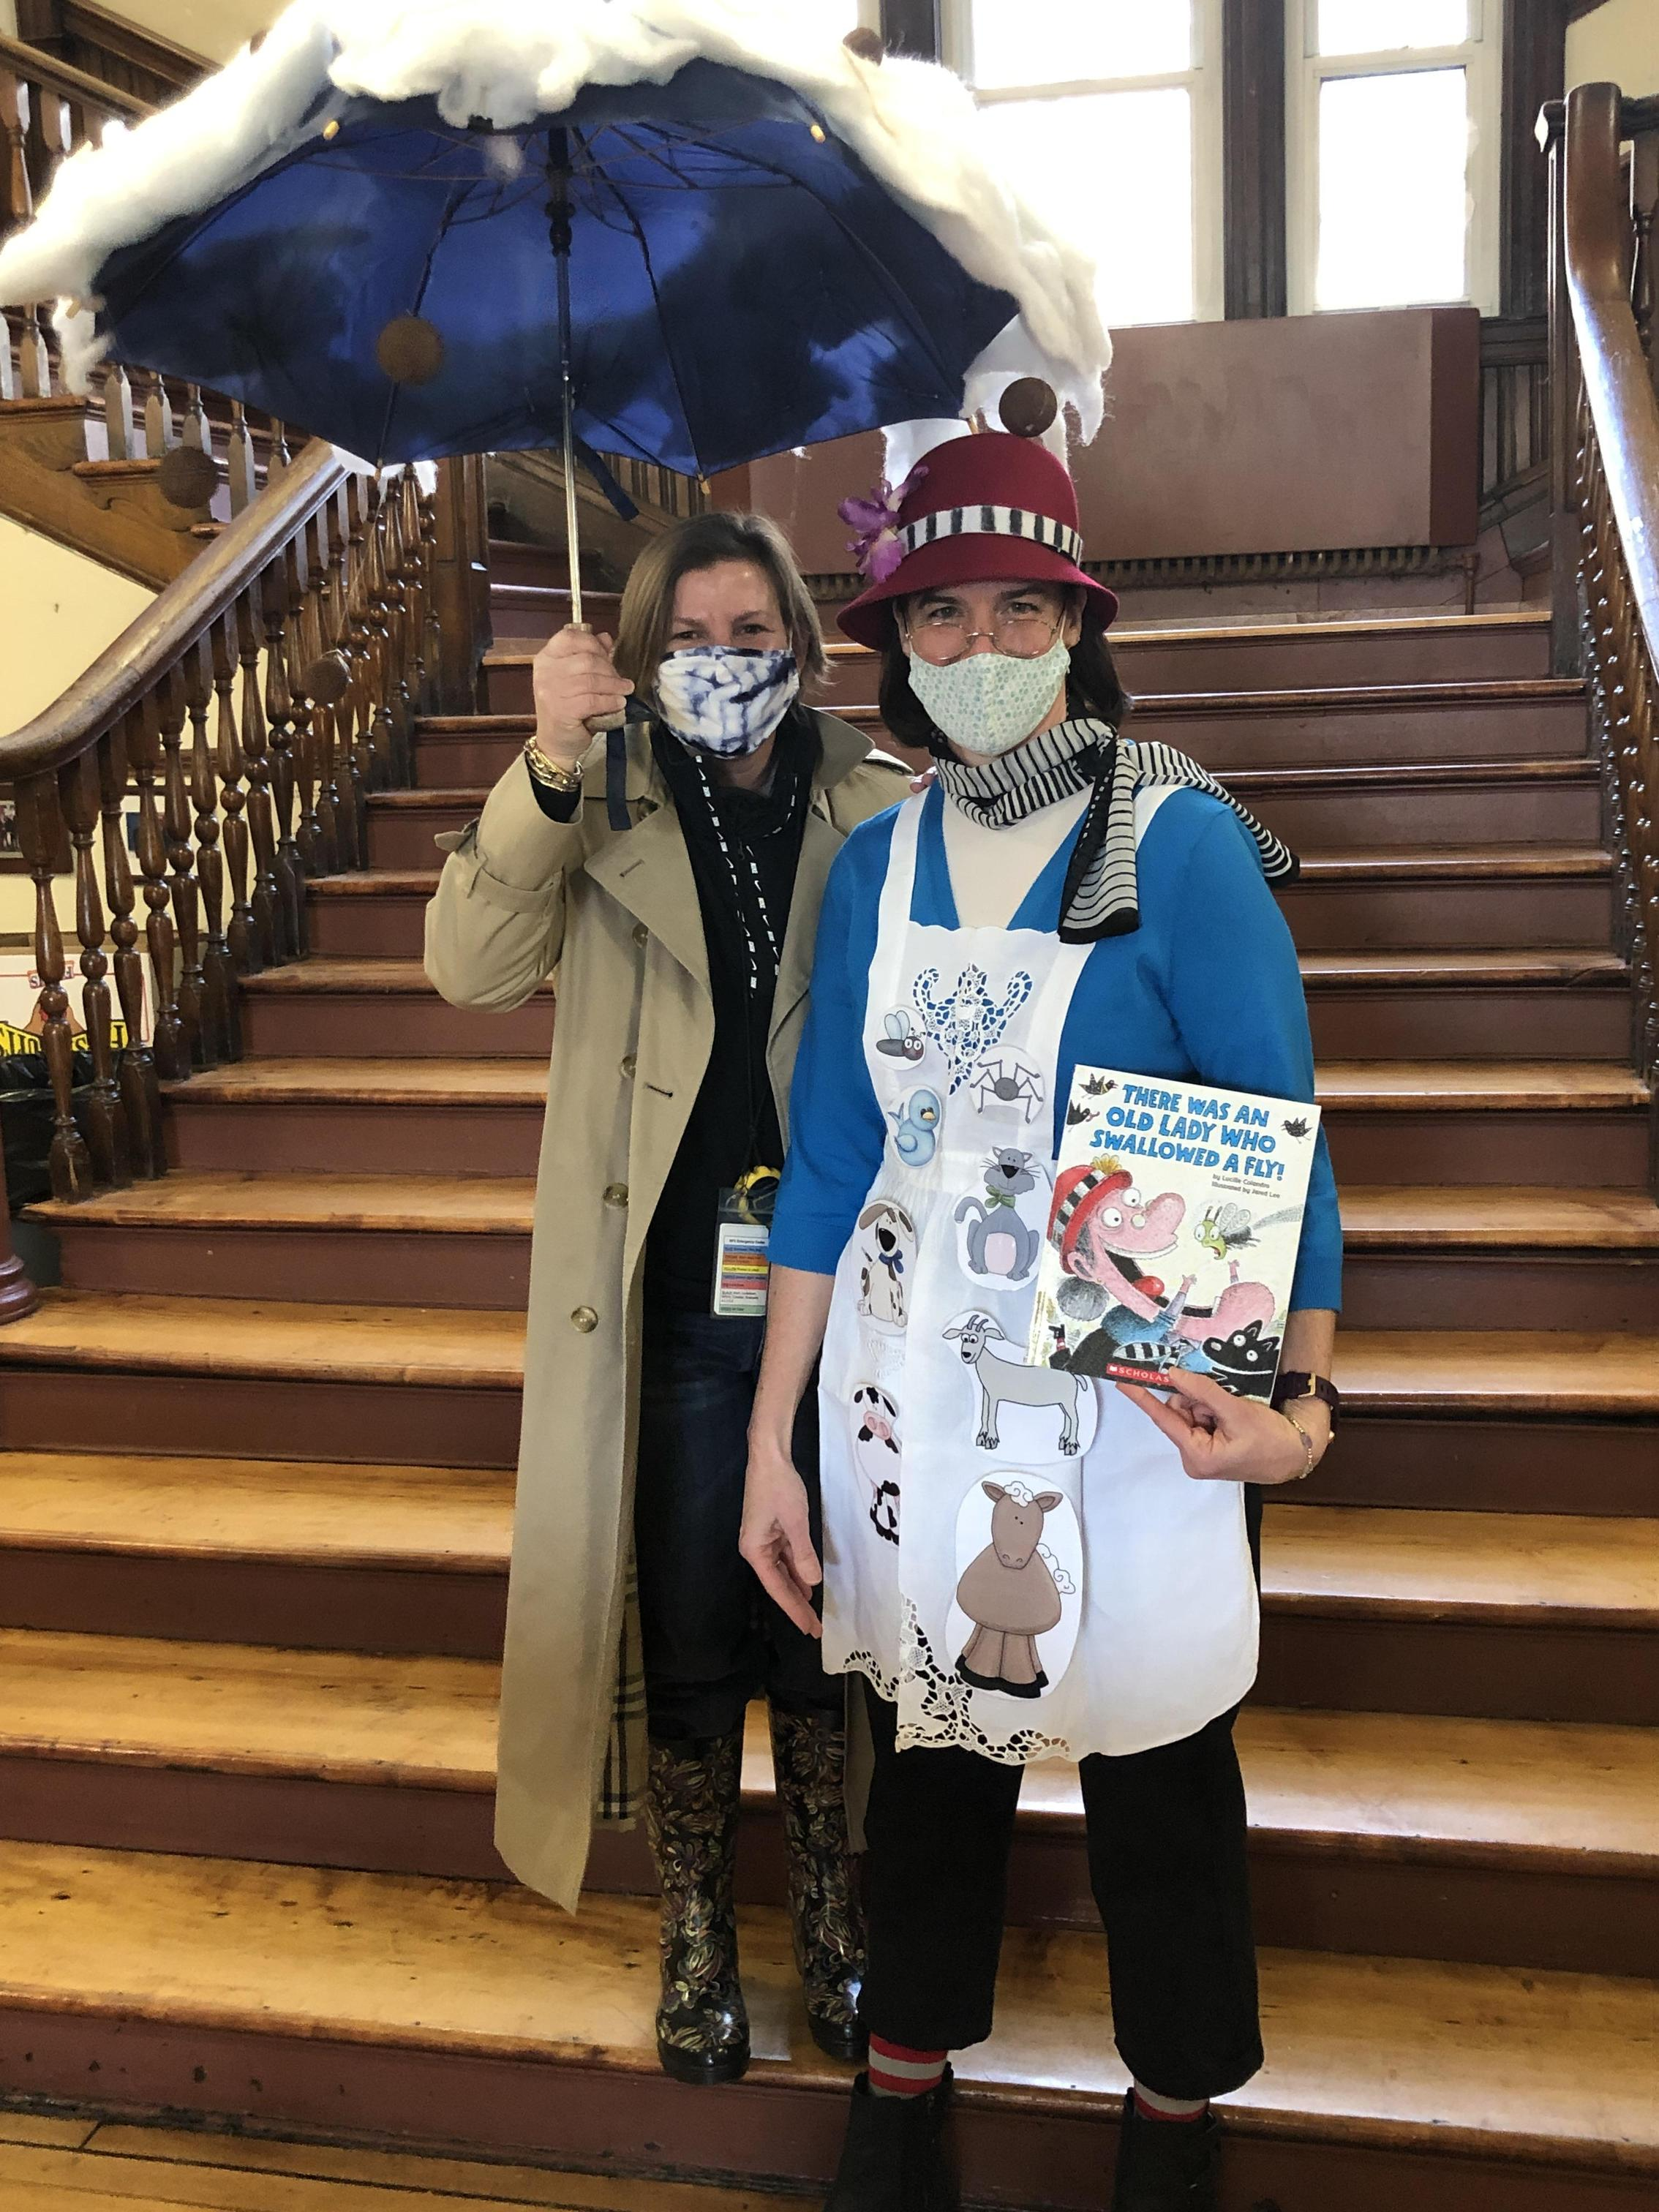 Two teachers dressed up as book characters